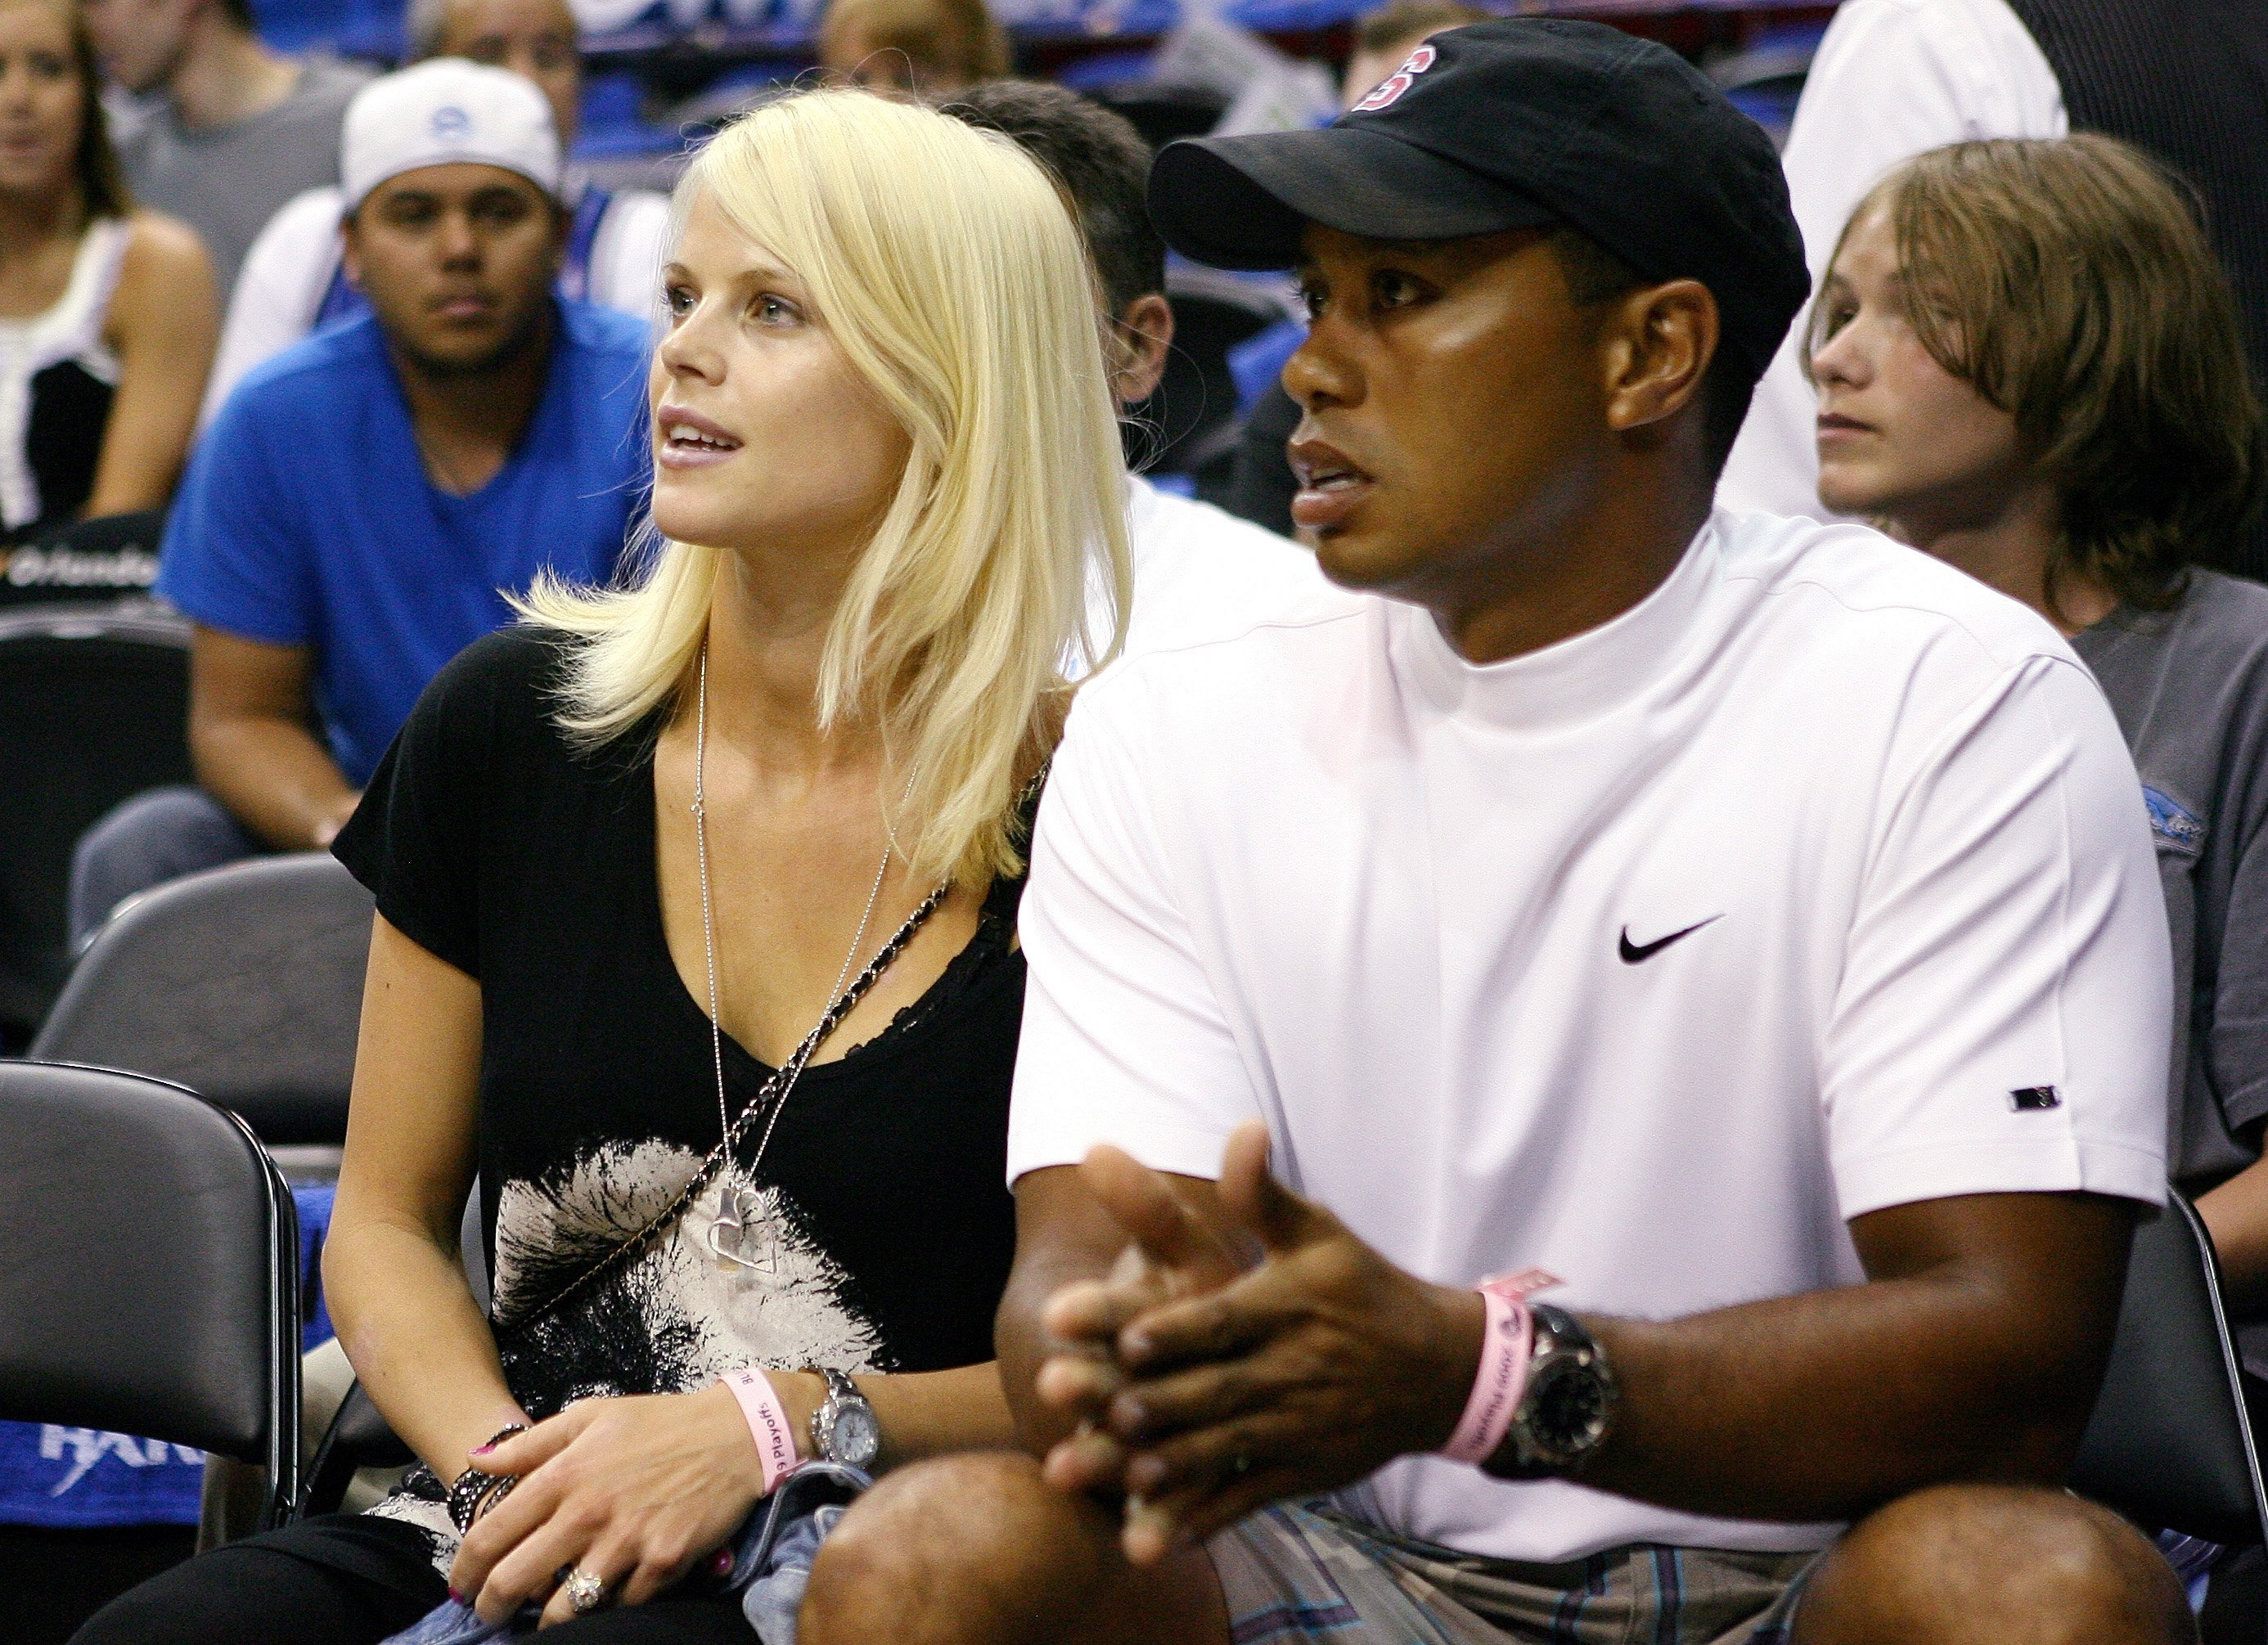 Golfer Tiger Woods sits courtside with his wife Elin during Game Four of the 2009 NBA Finals. | Photo: GettyImages